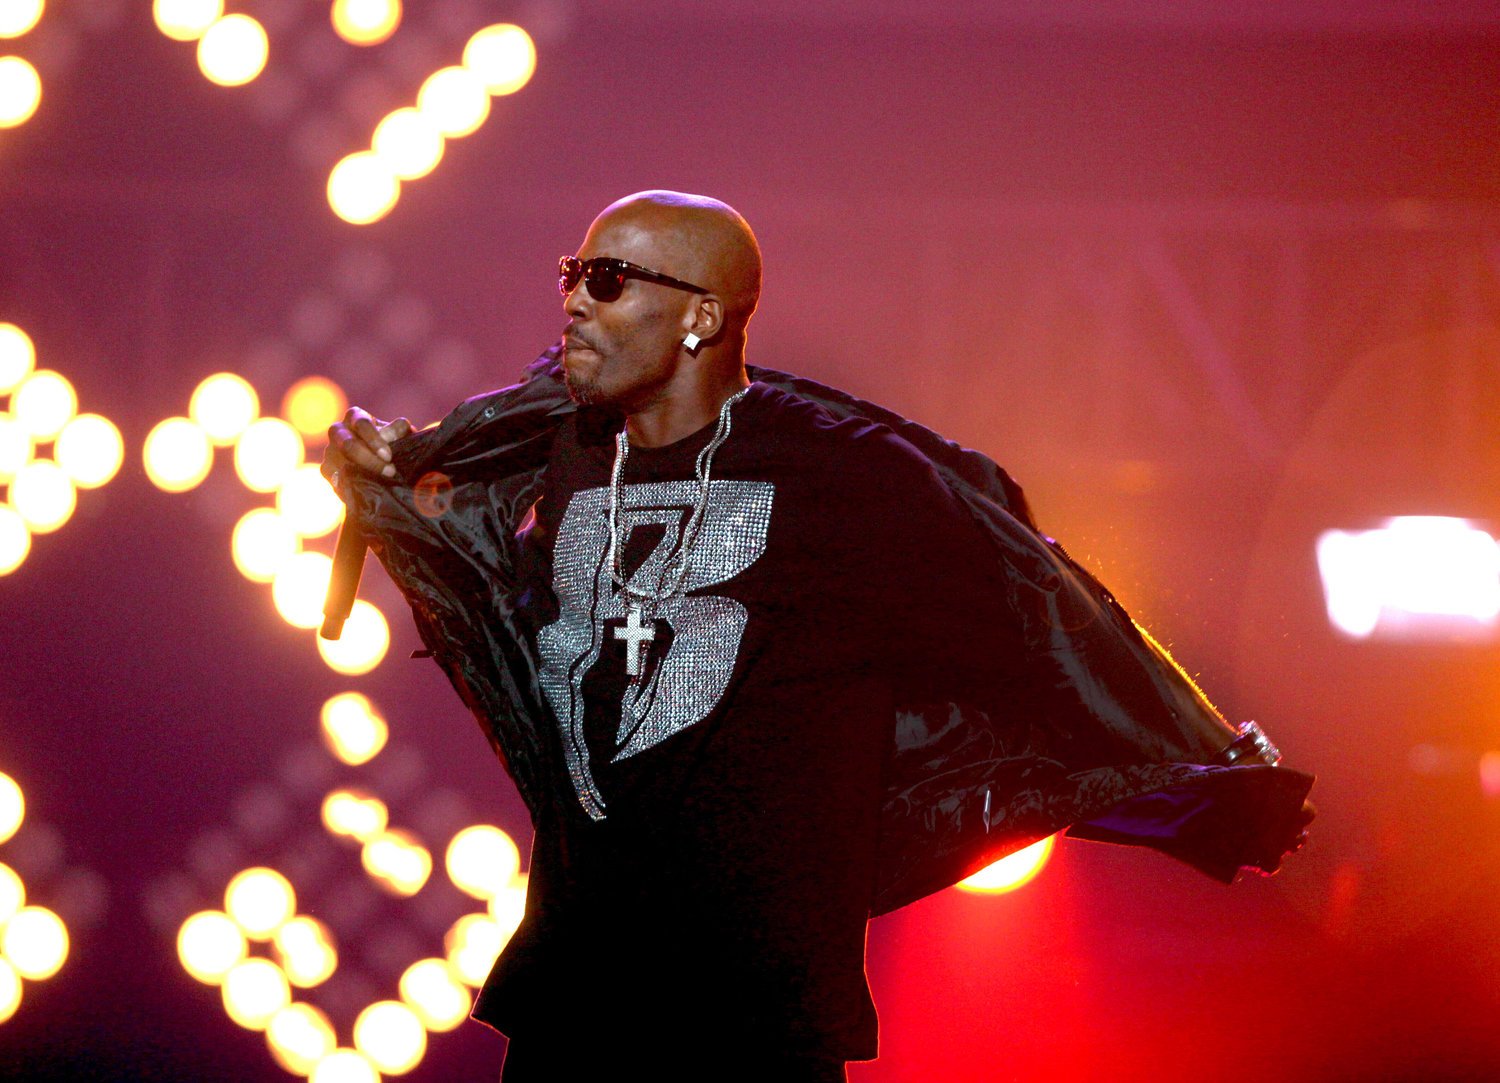 FILE- In this Oct. 1, 2011 file photo, DMX performs during the BET Hip Hop Awards in Atlanta.   (AP Photo/David Goldman, File)